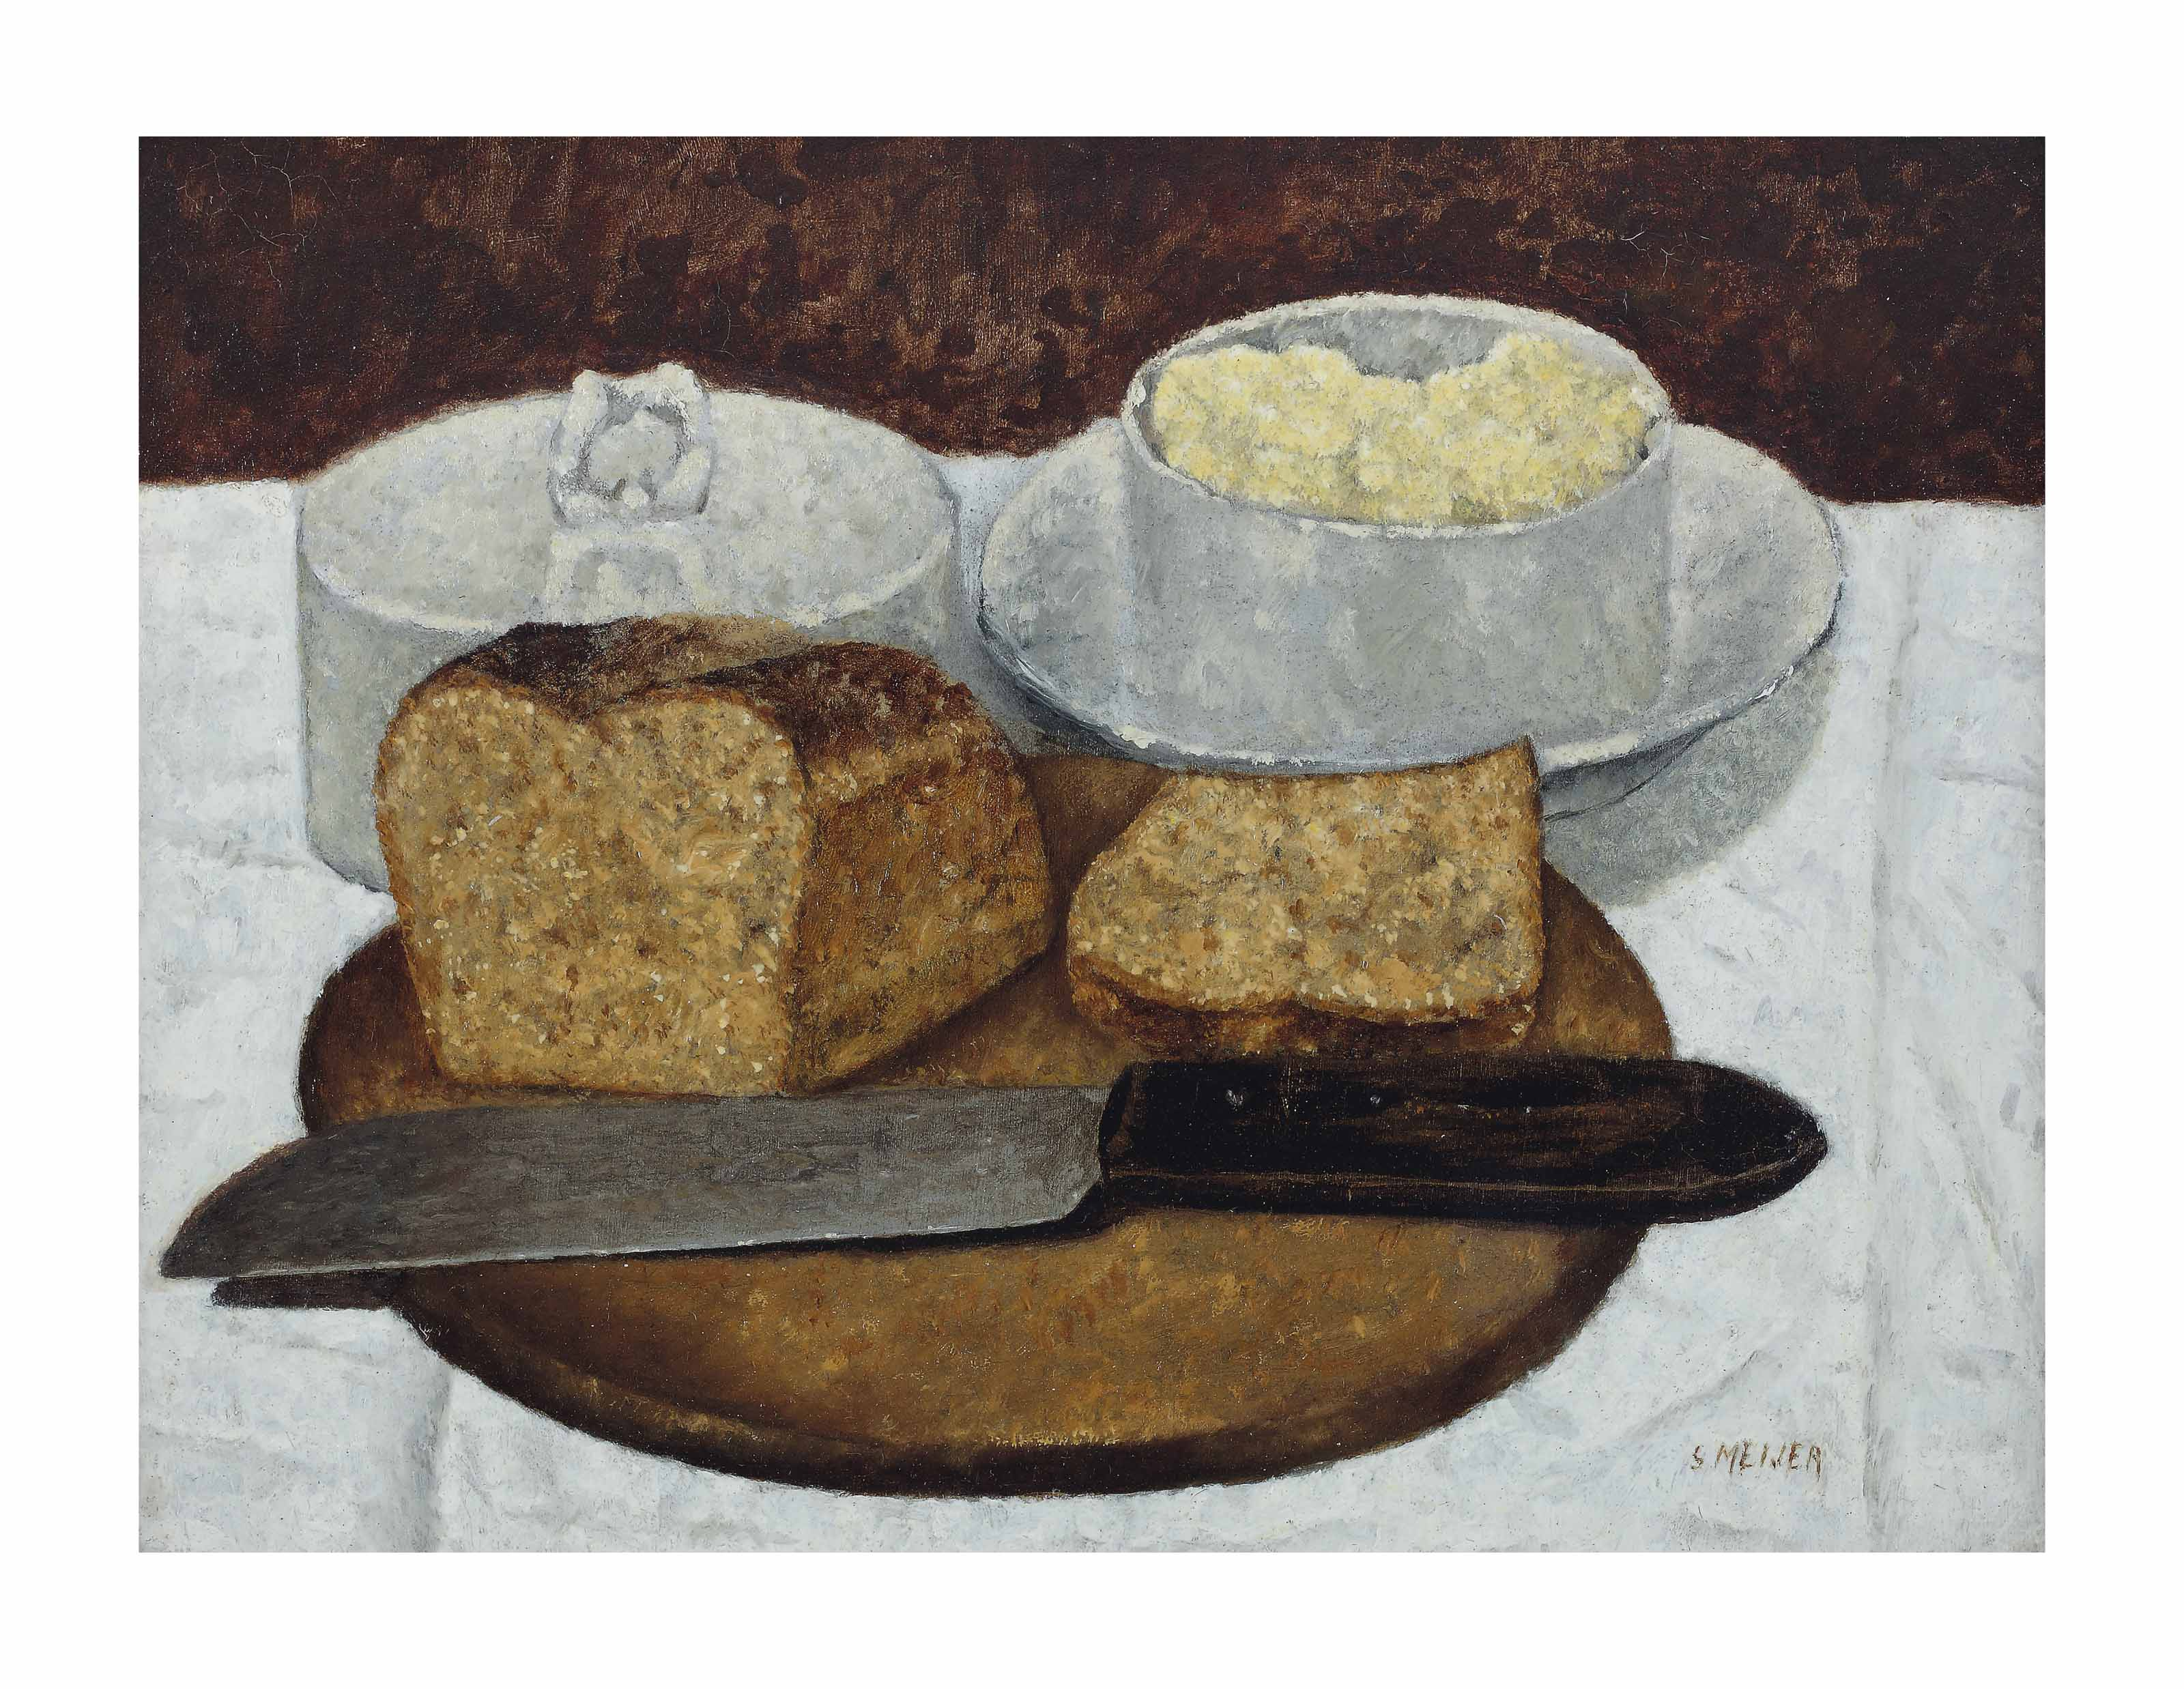 A still life with bread, butter and a knife